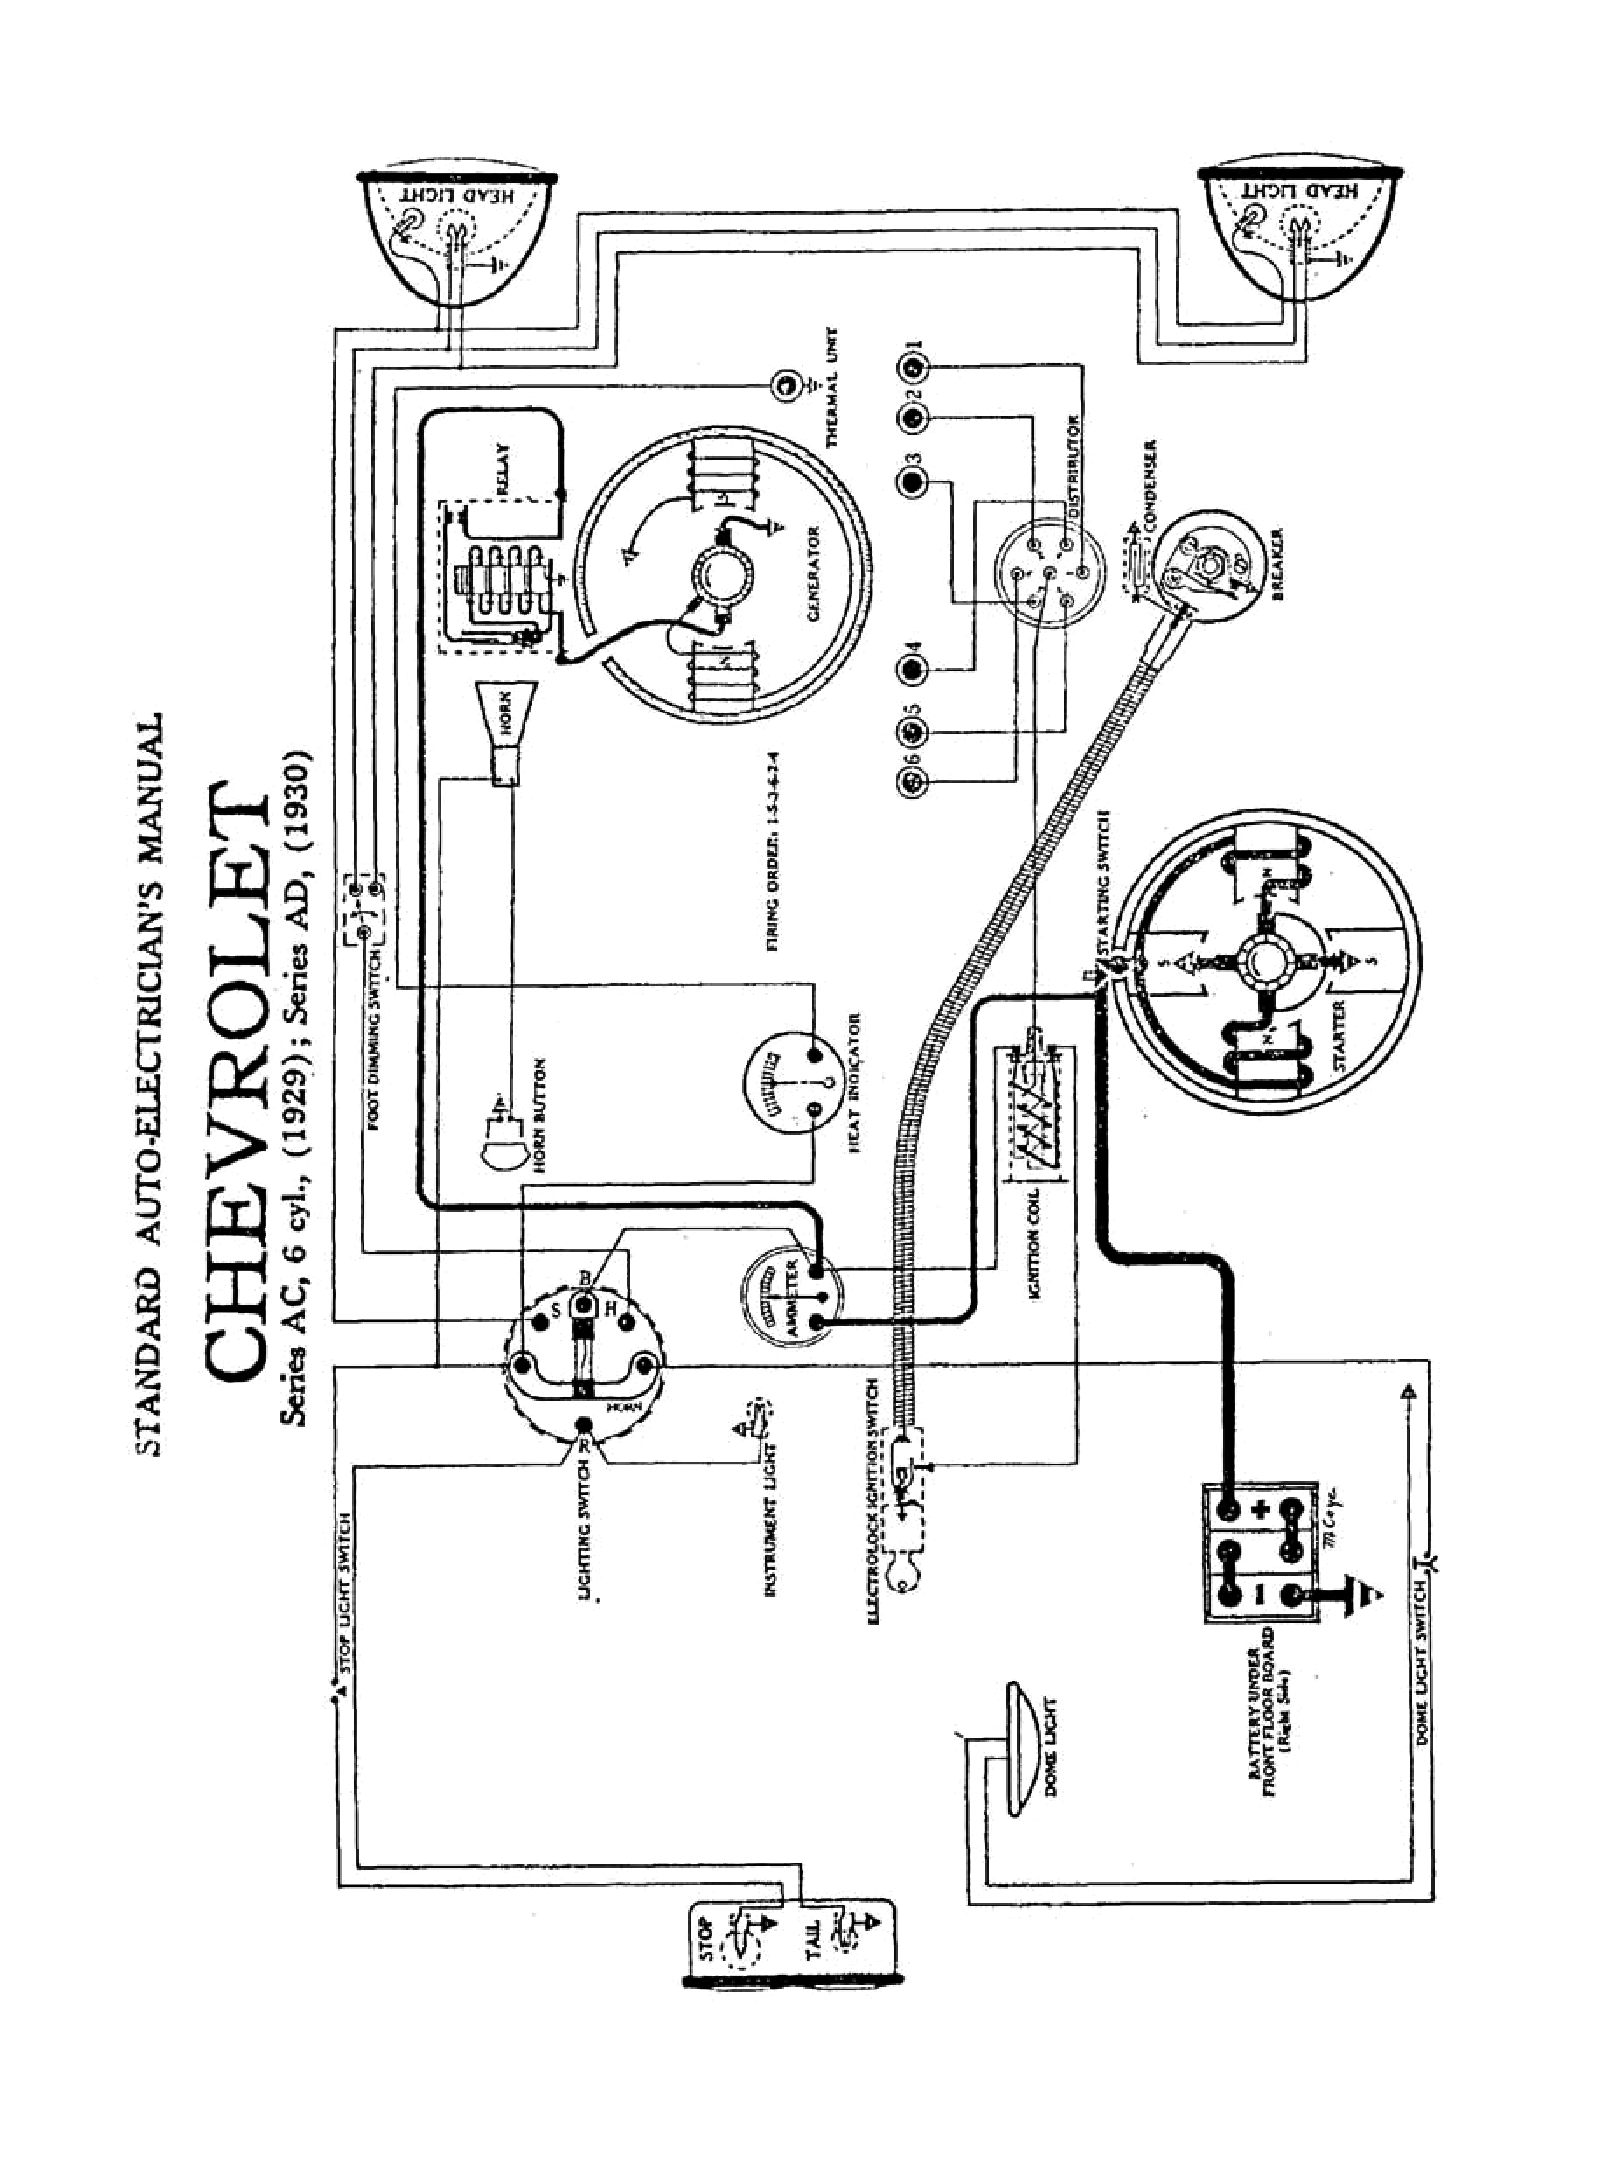 1931 Cadillac Wiring Diagram Archive Of Automotive Yamaha V Star 1100 Engine Chevy Diagrams Rh Oldcarmanualproject Com